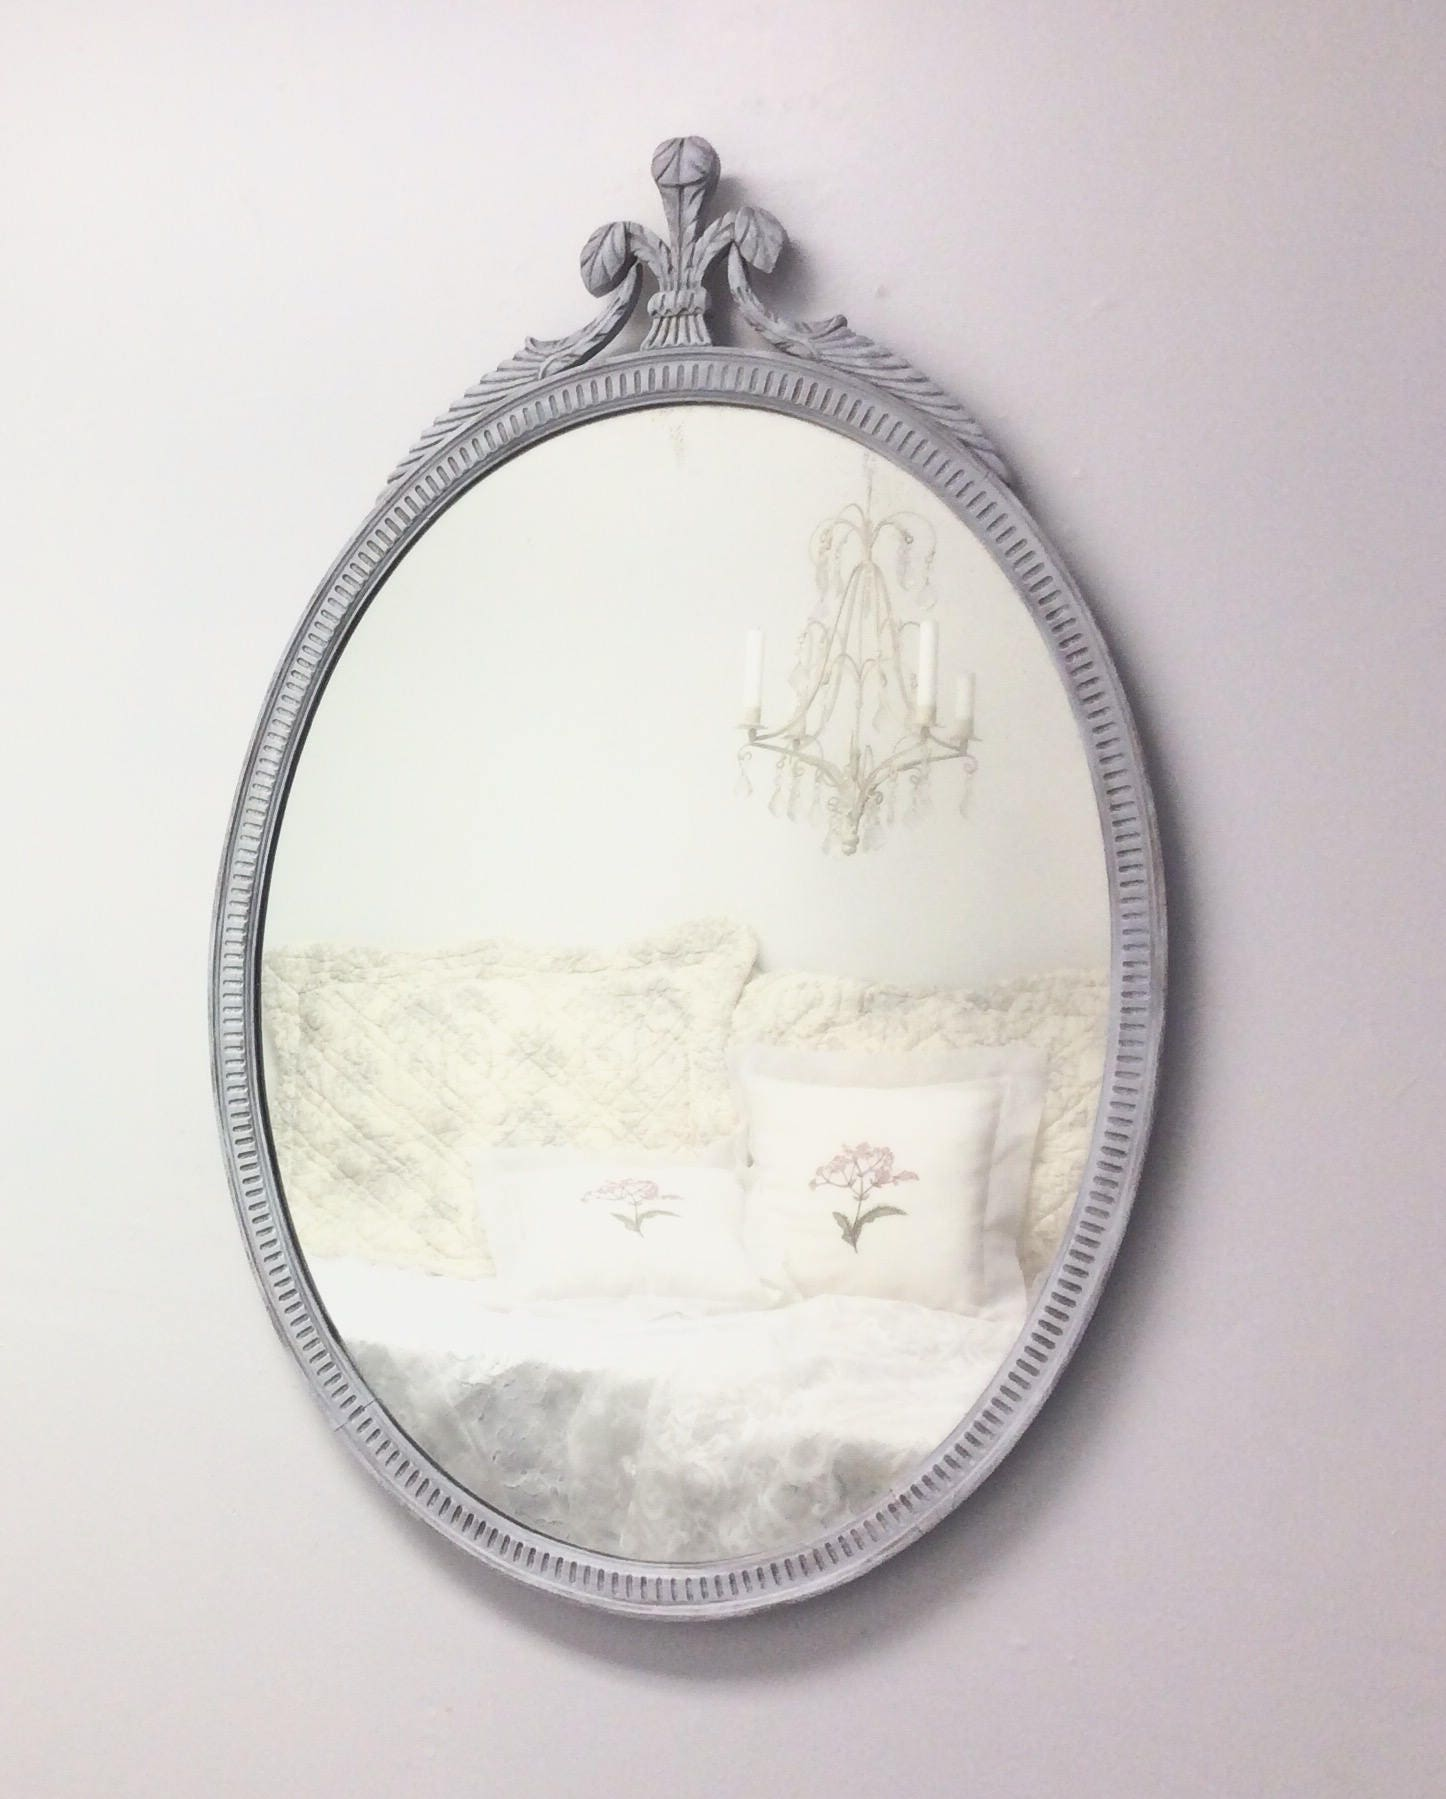 Vintage framed mirrors for sale large oval antique framed for Large wall mirrors for sale